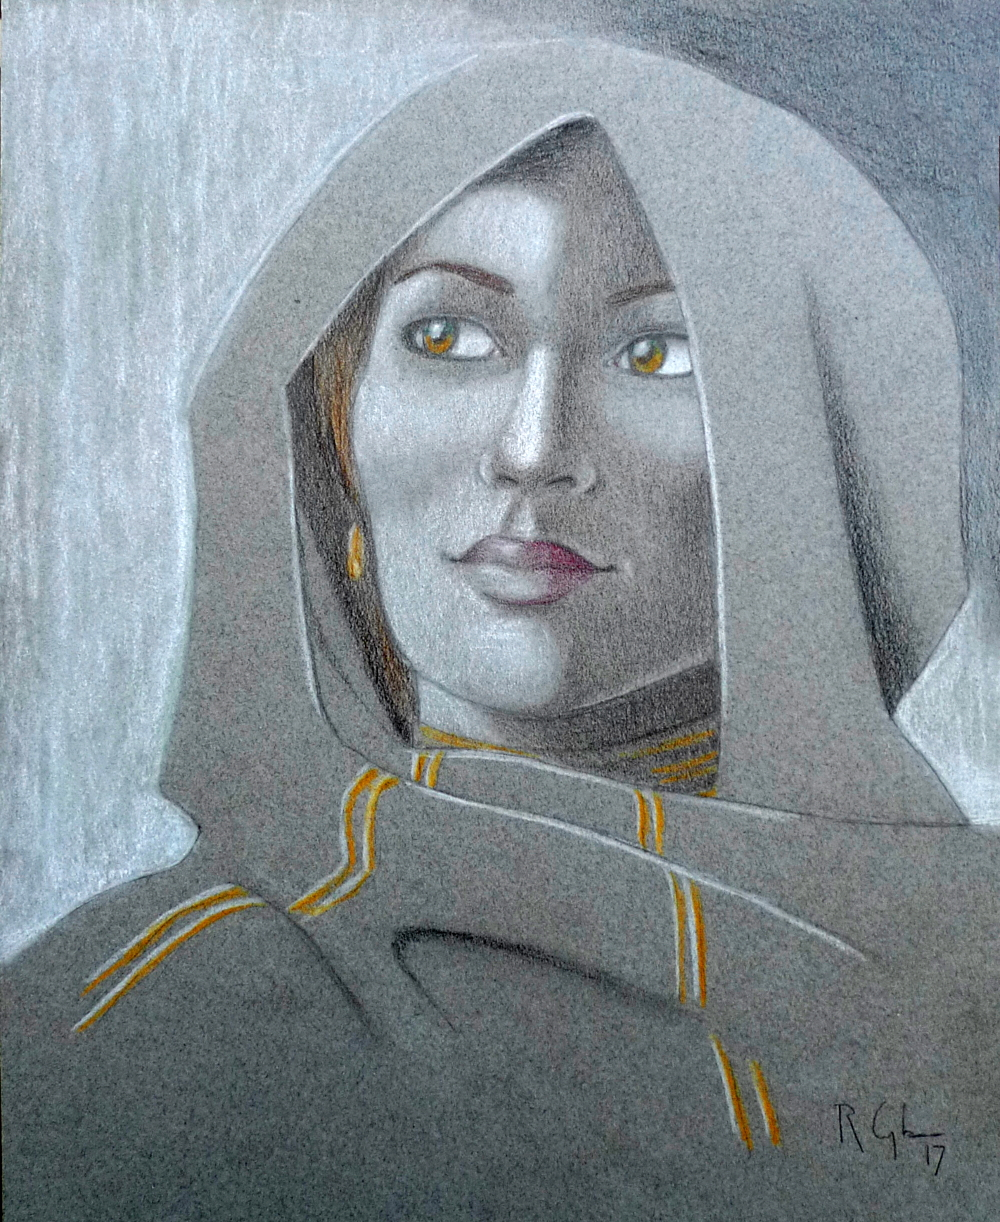 """ The sibyl of the future "", black pencil, color pencil and pastel on paper"